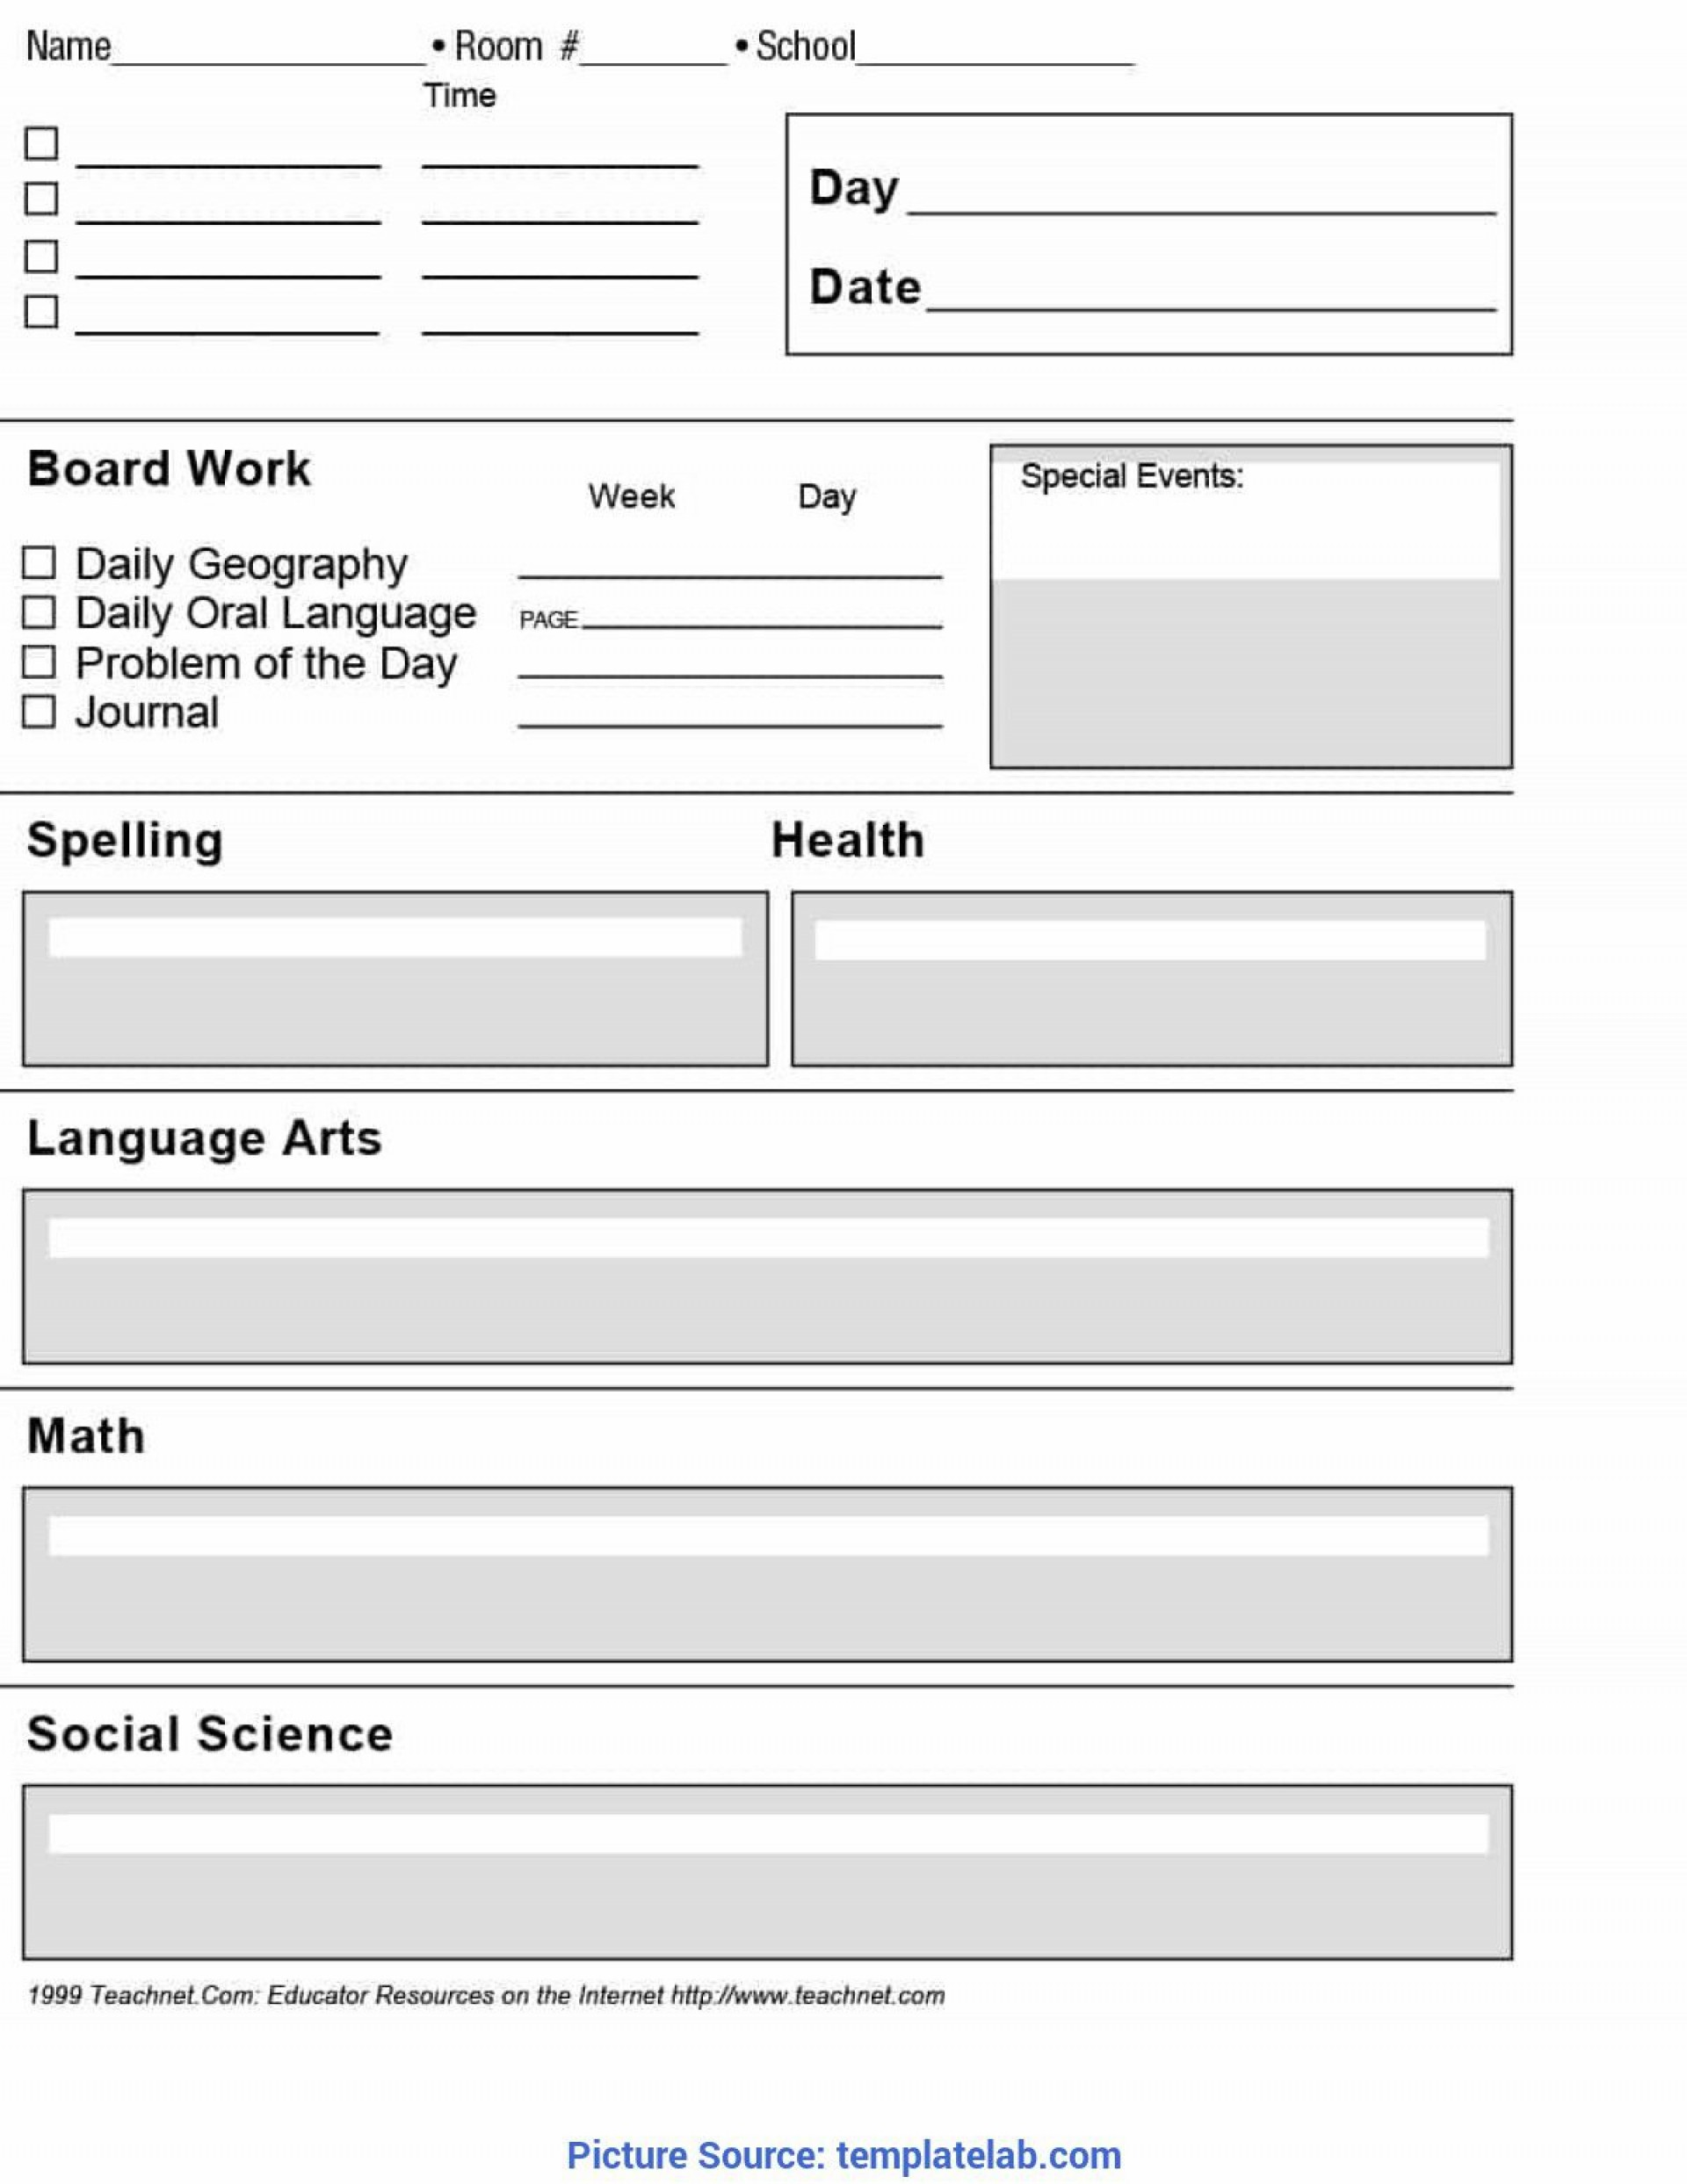 002 Archaicawful Free Unit Lesson Plan Template Idea 1920